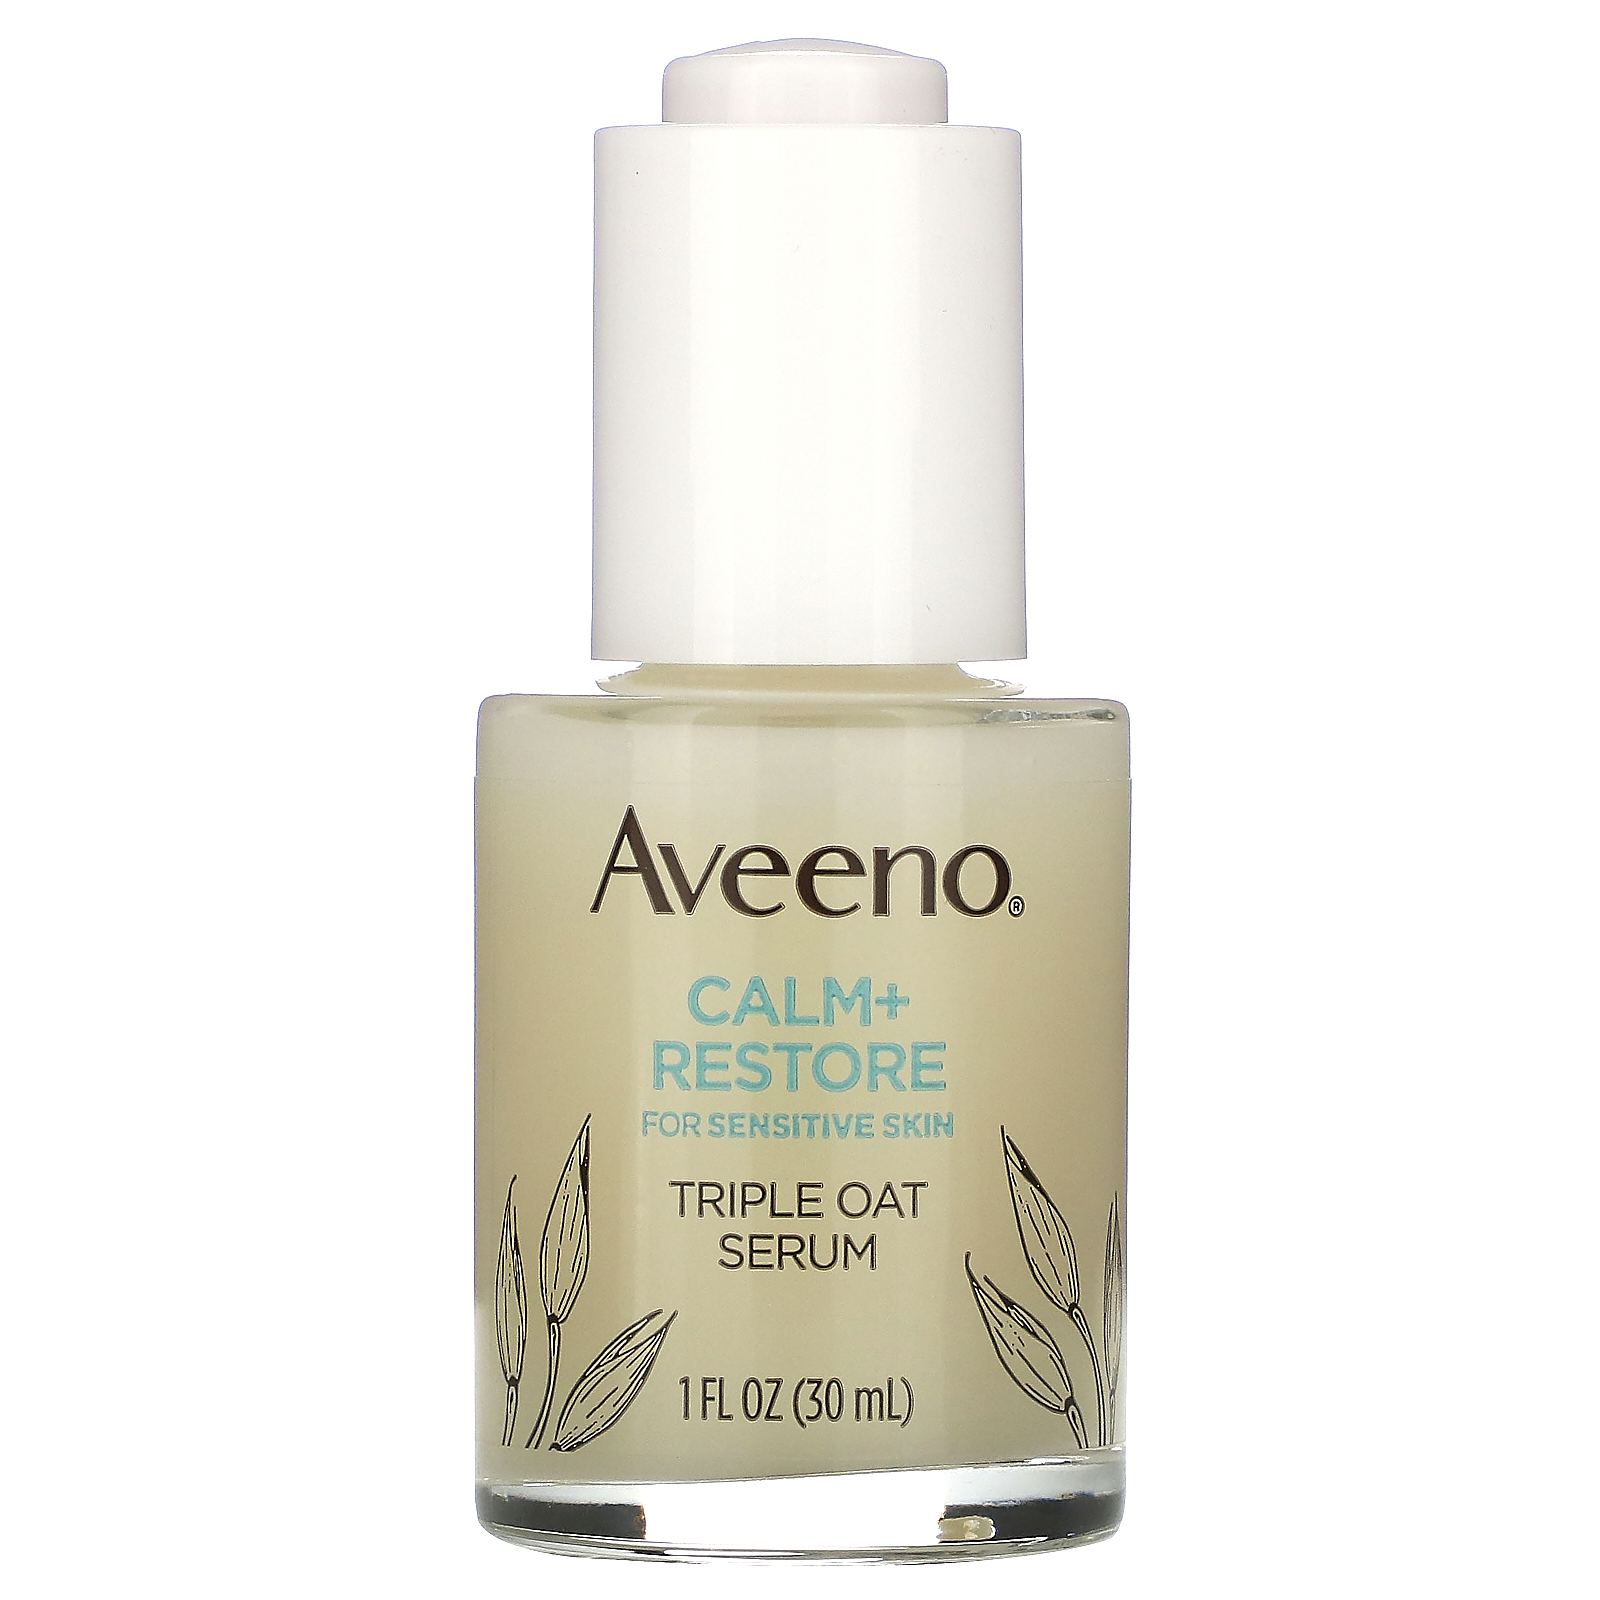 Aveeno, Calm + Restore For Sensitive Skin, Triple Oat Serum,  1 fl oz (30 ml)